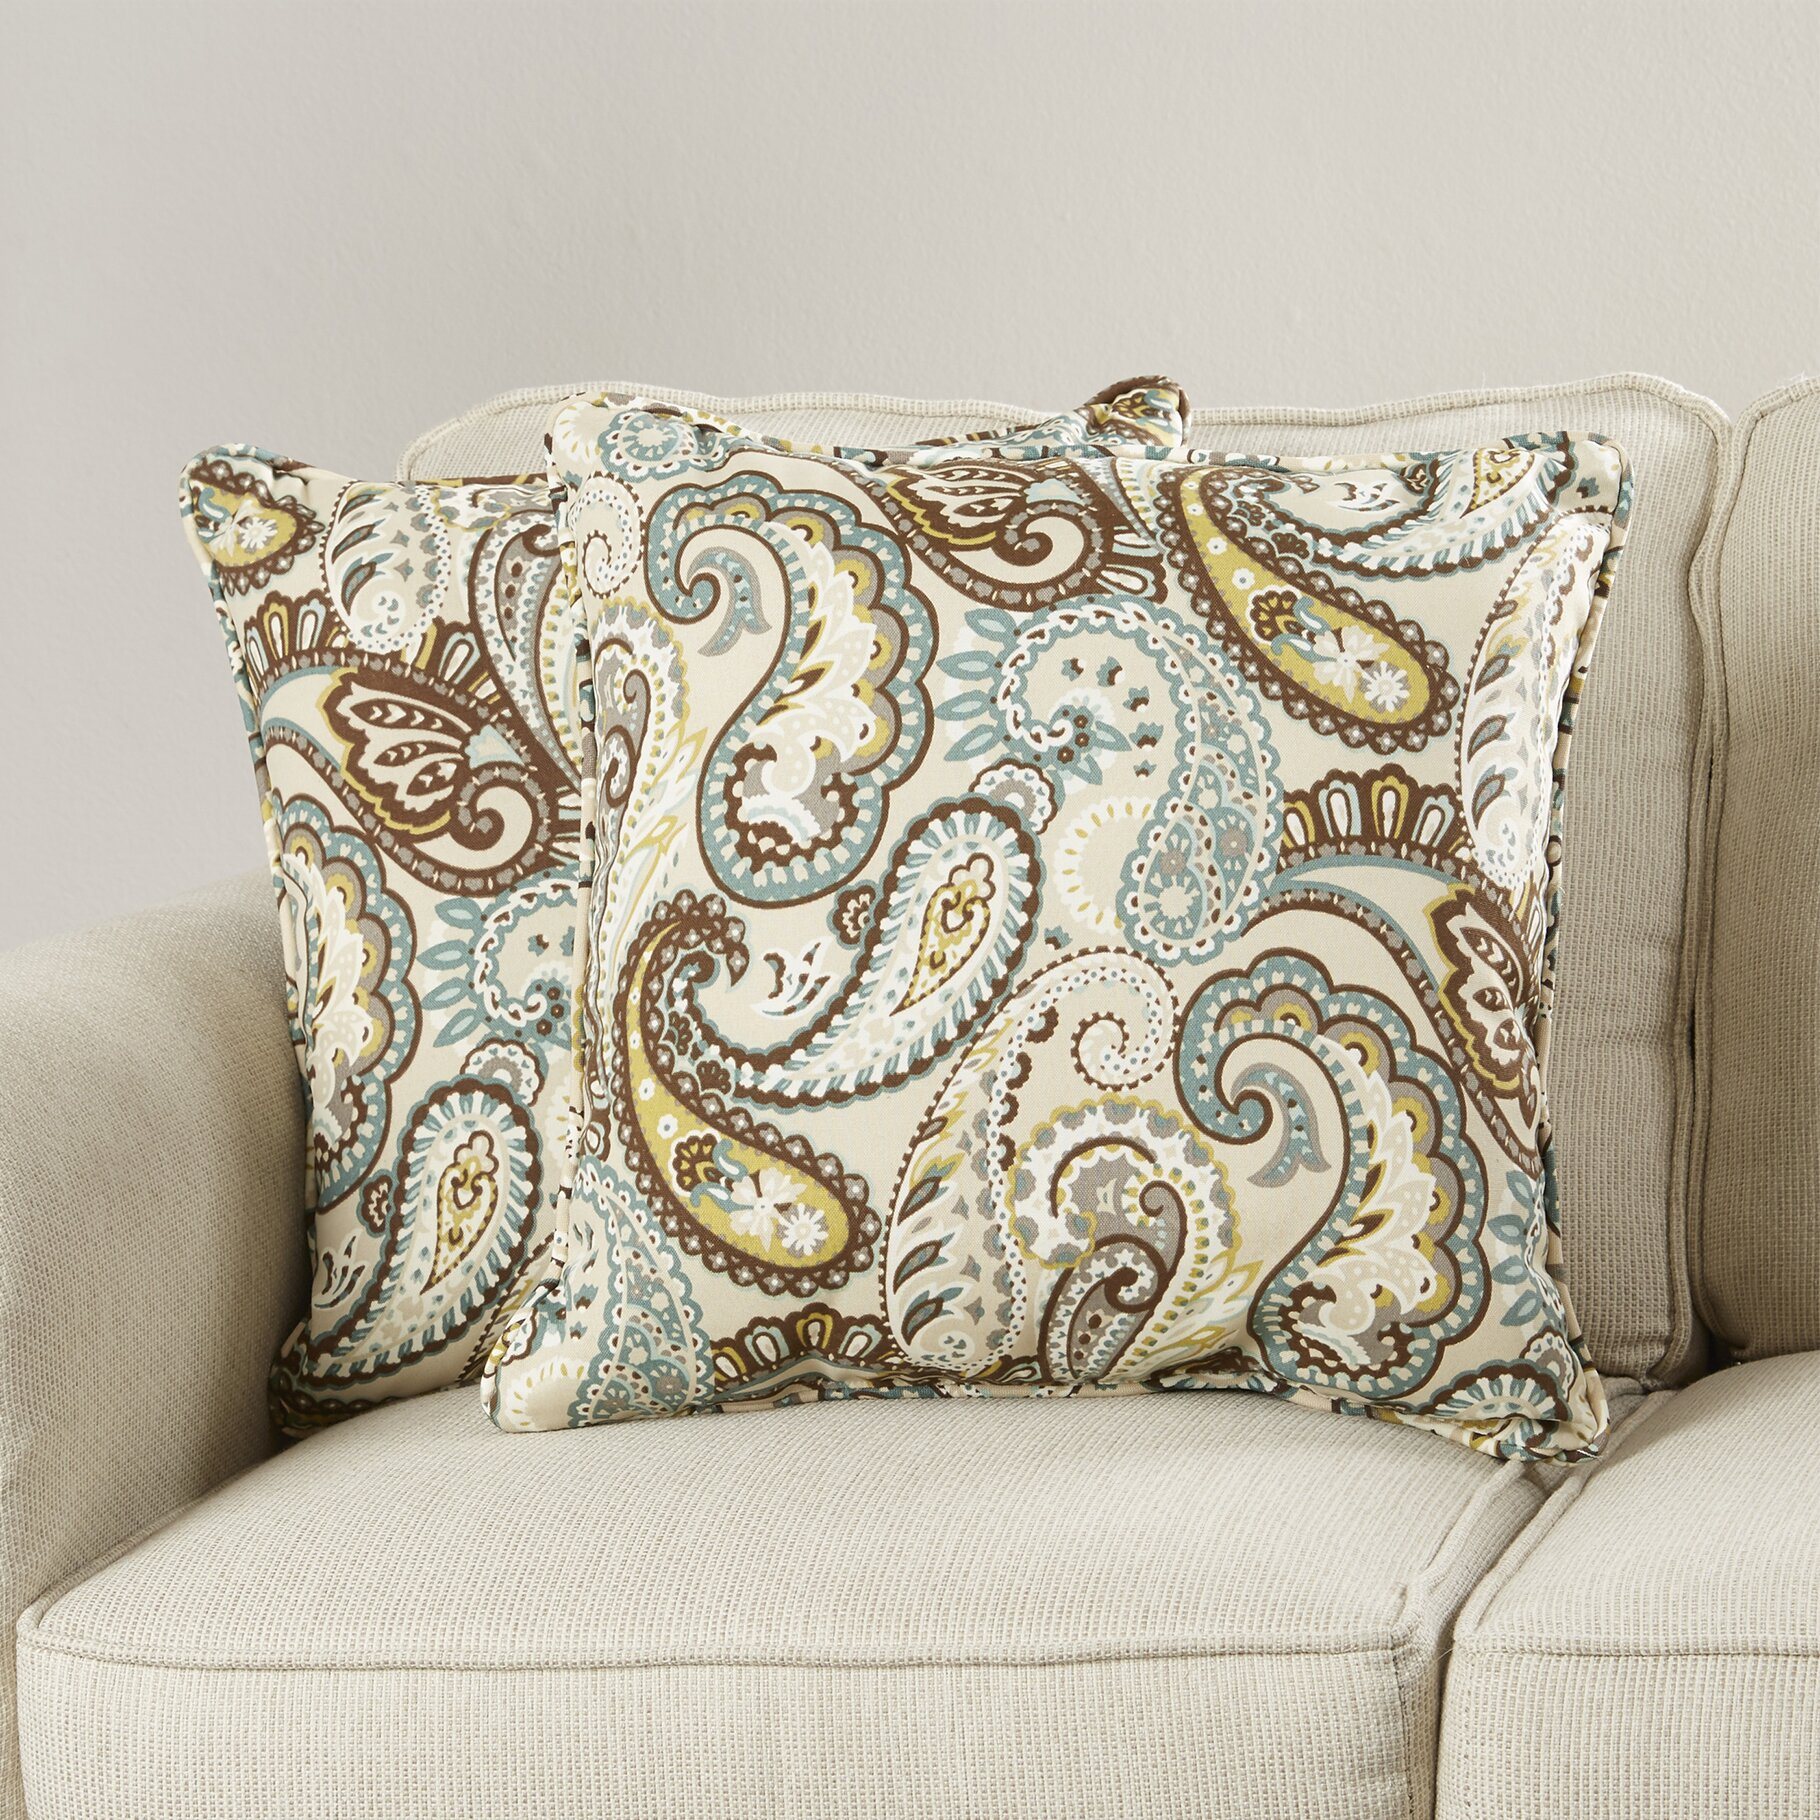 Indoor Outdoor Decorative Pillows : Pillow Perfect Tamara Indoor/Outdoor Throw Pillow & Reviews Wayfair